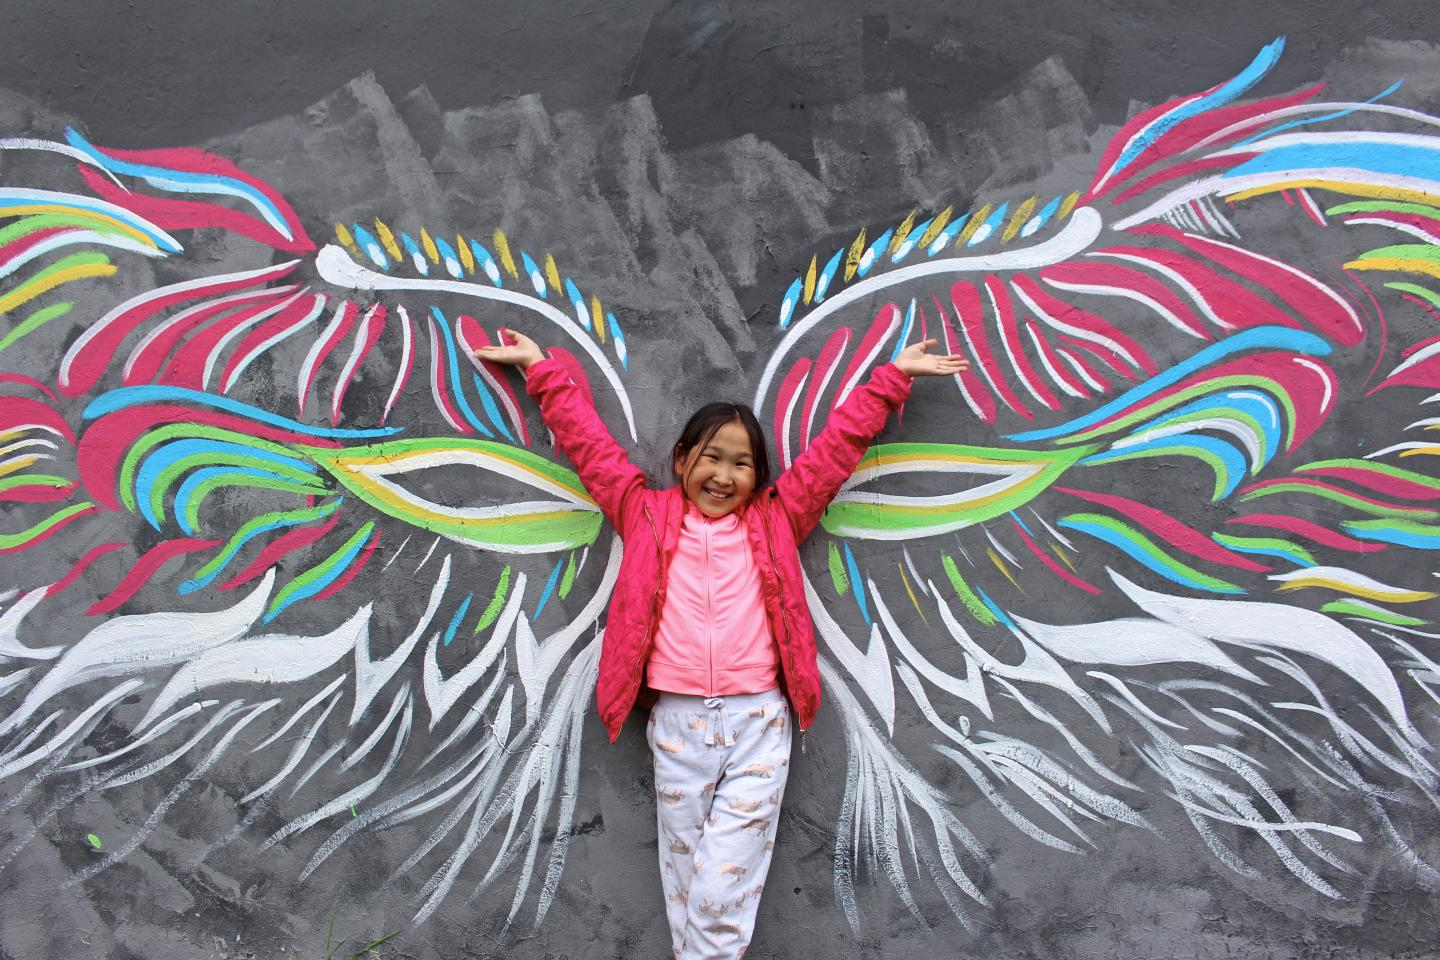 a girl raises her arms in front of drawings of wings on a wall